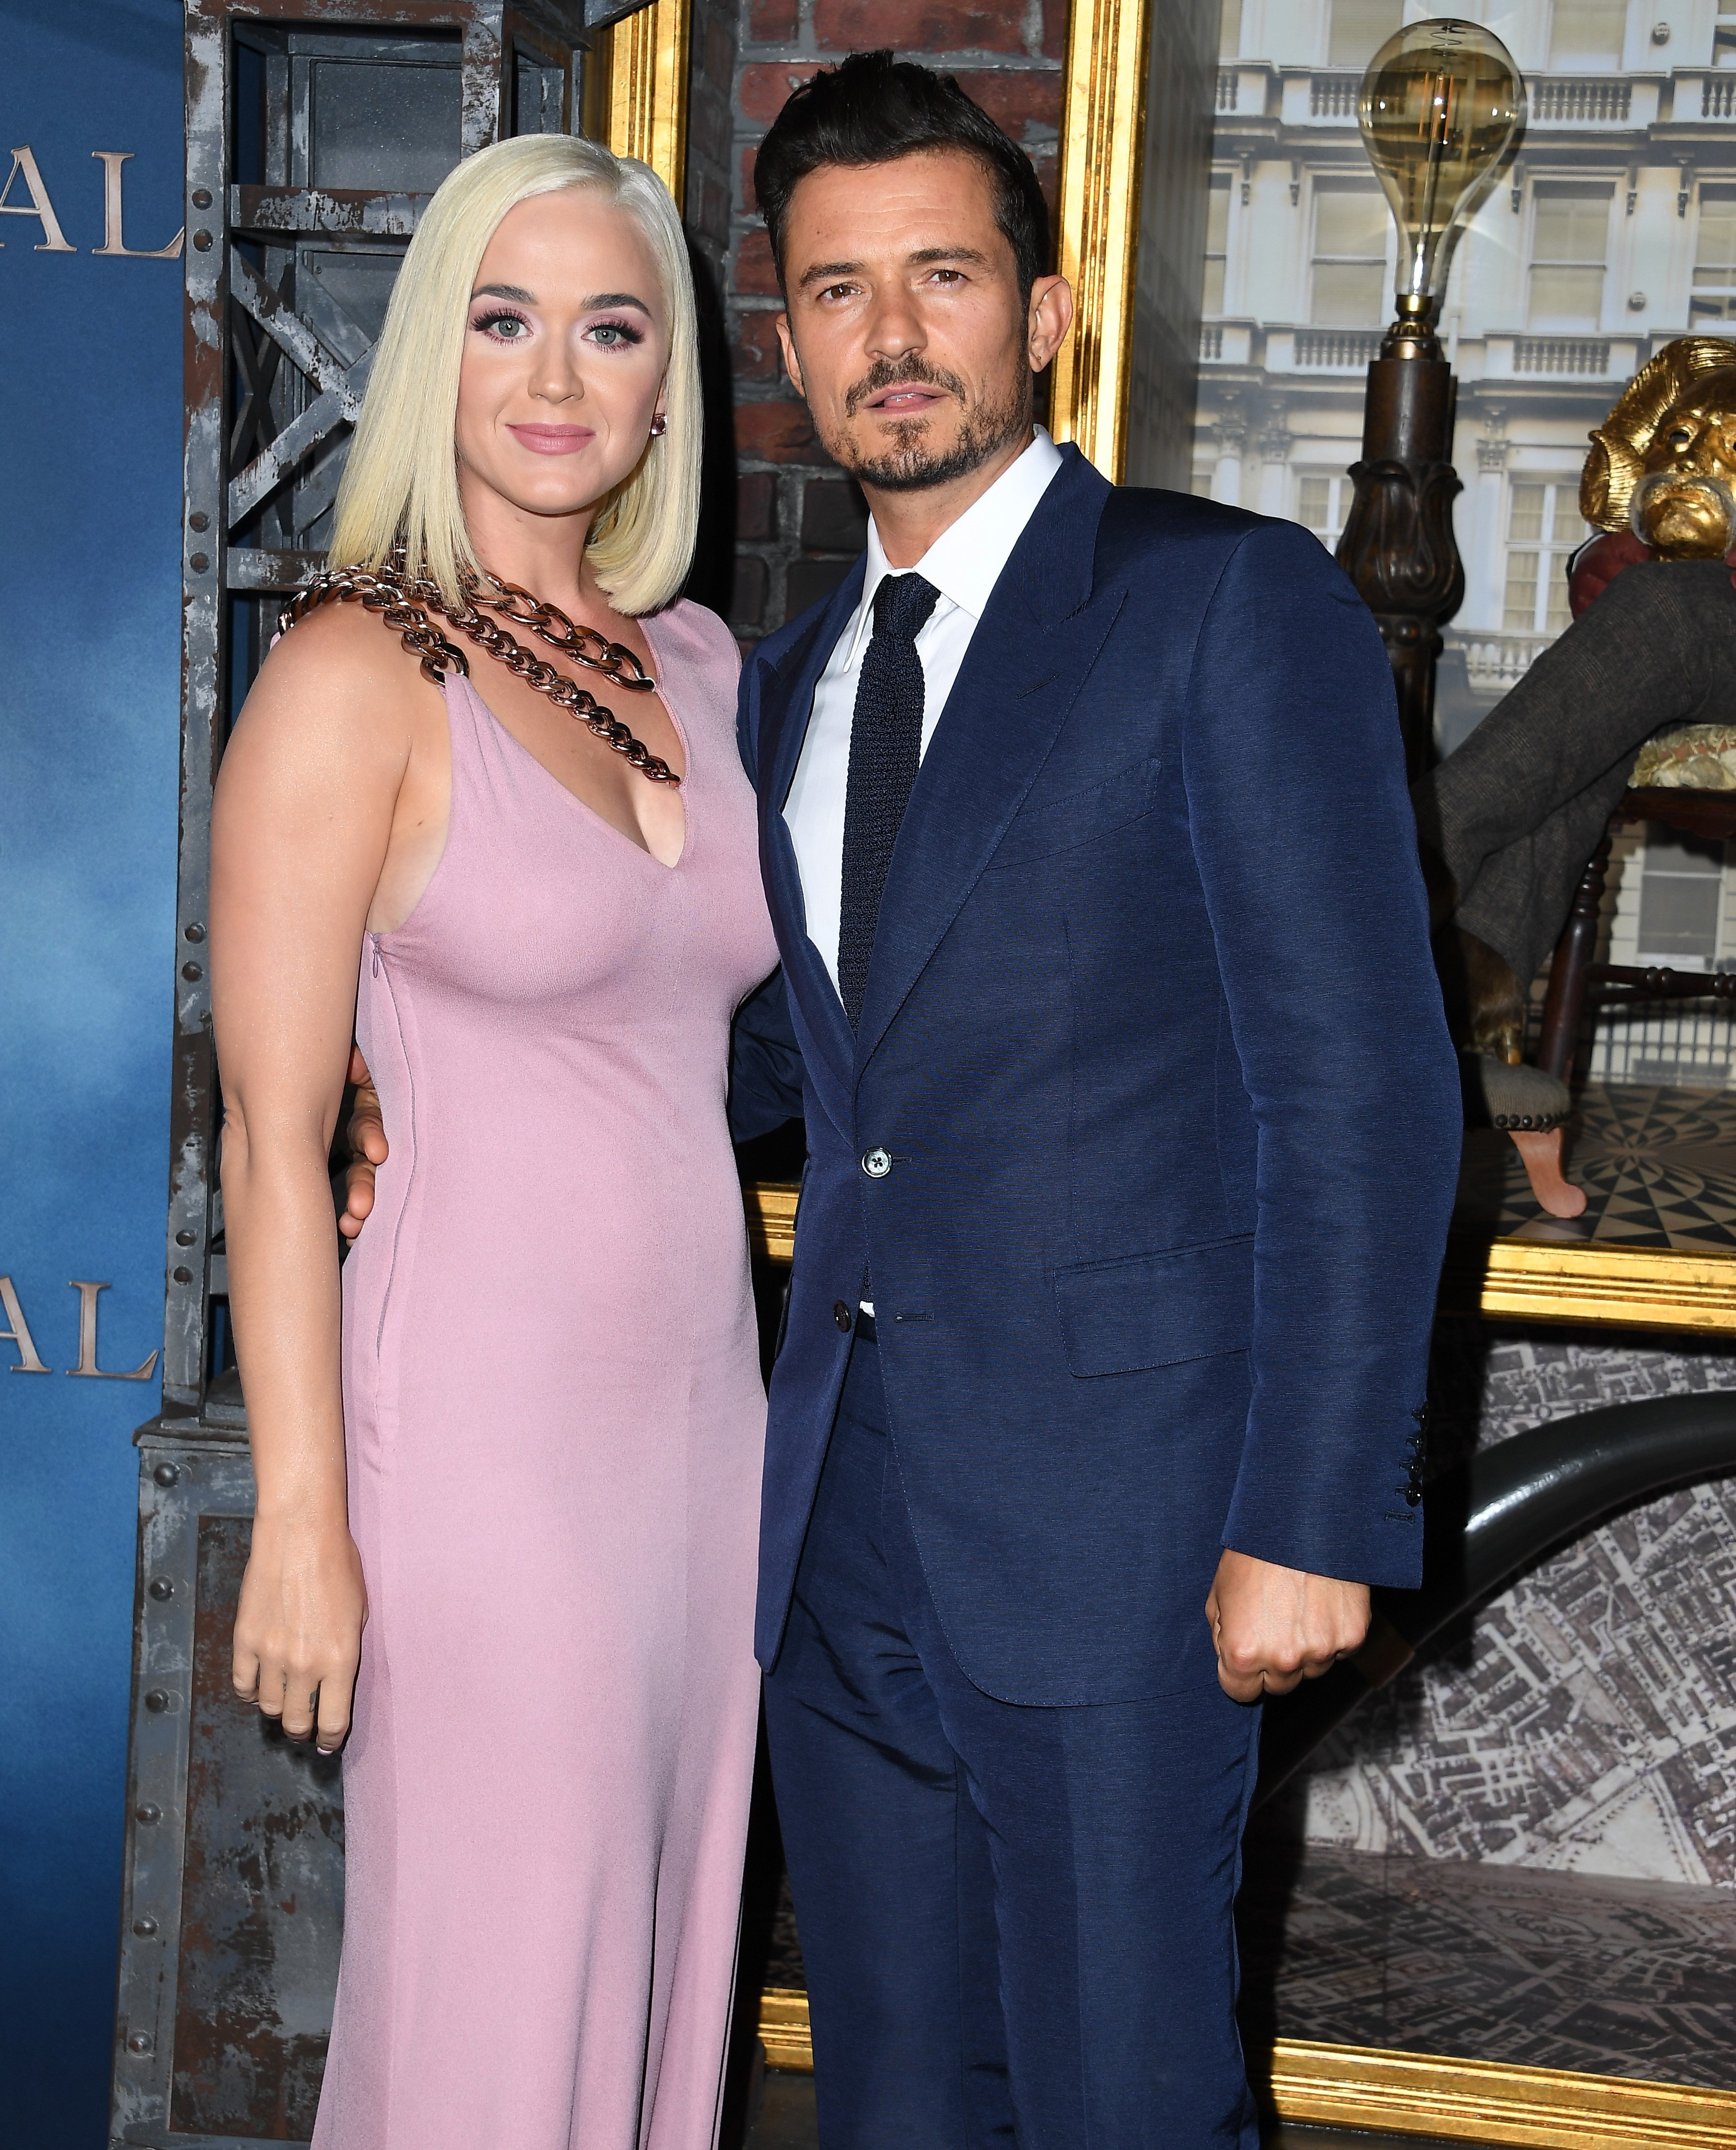 """Katy Perry and Orlando Bloom at the LA premiere of Amazon's """"Carnival Row"""" on August 21, 2019 in Hollywood, California. 